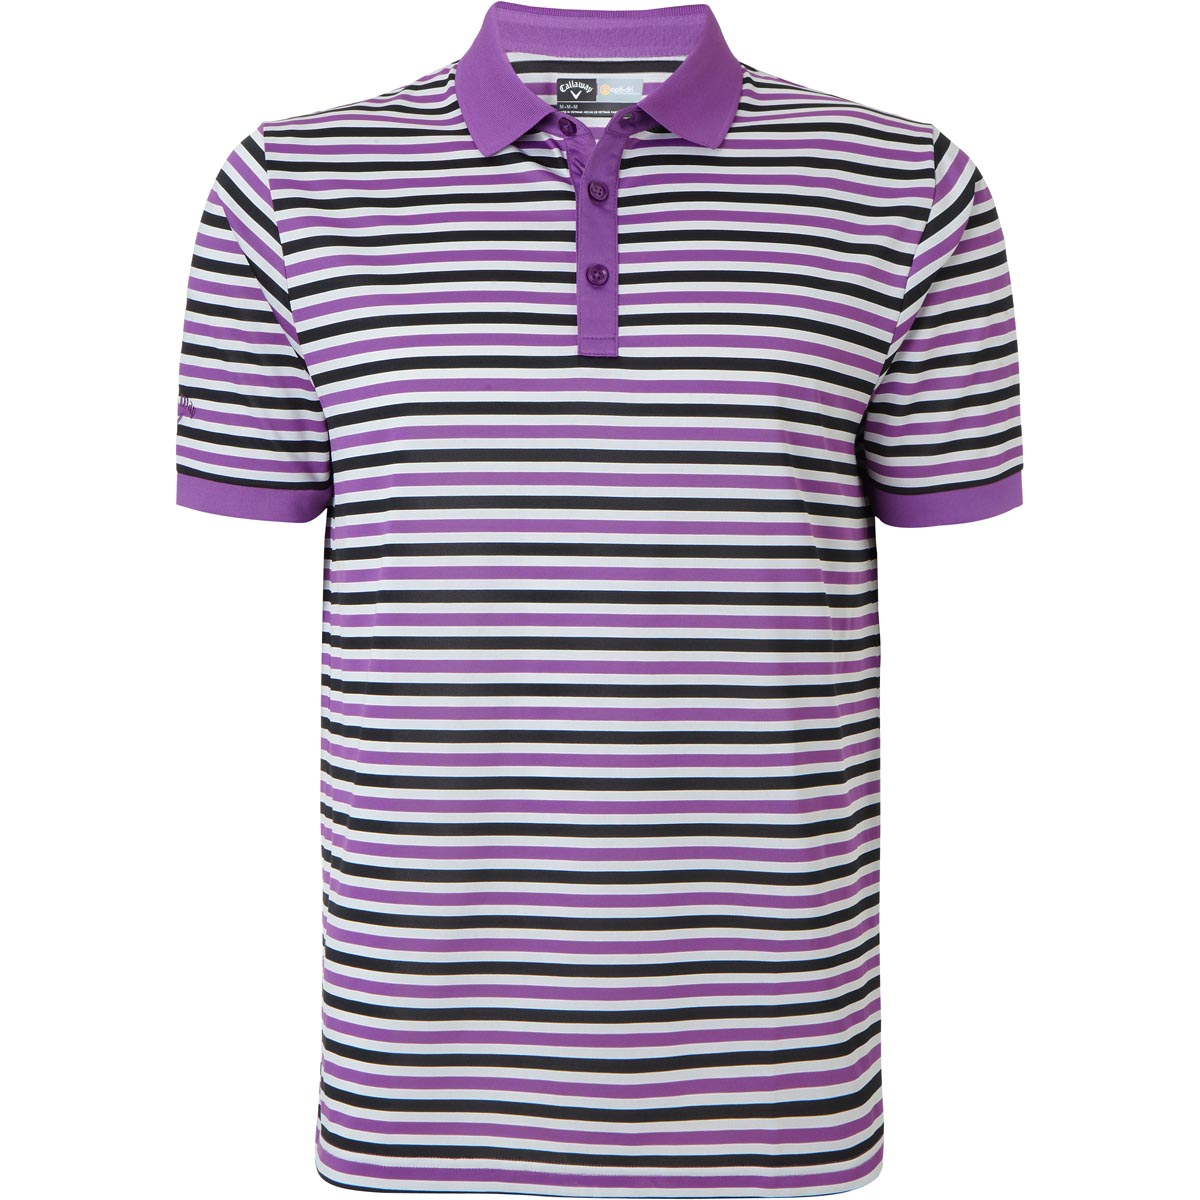 Callaway golf mens core chev striped performance polo for Polo golf performance shirt